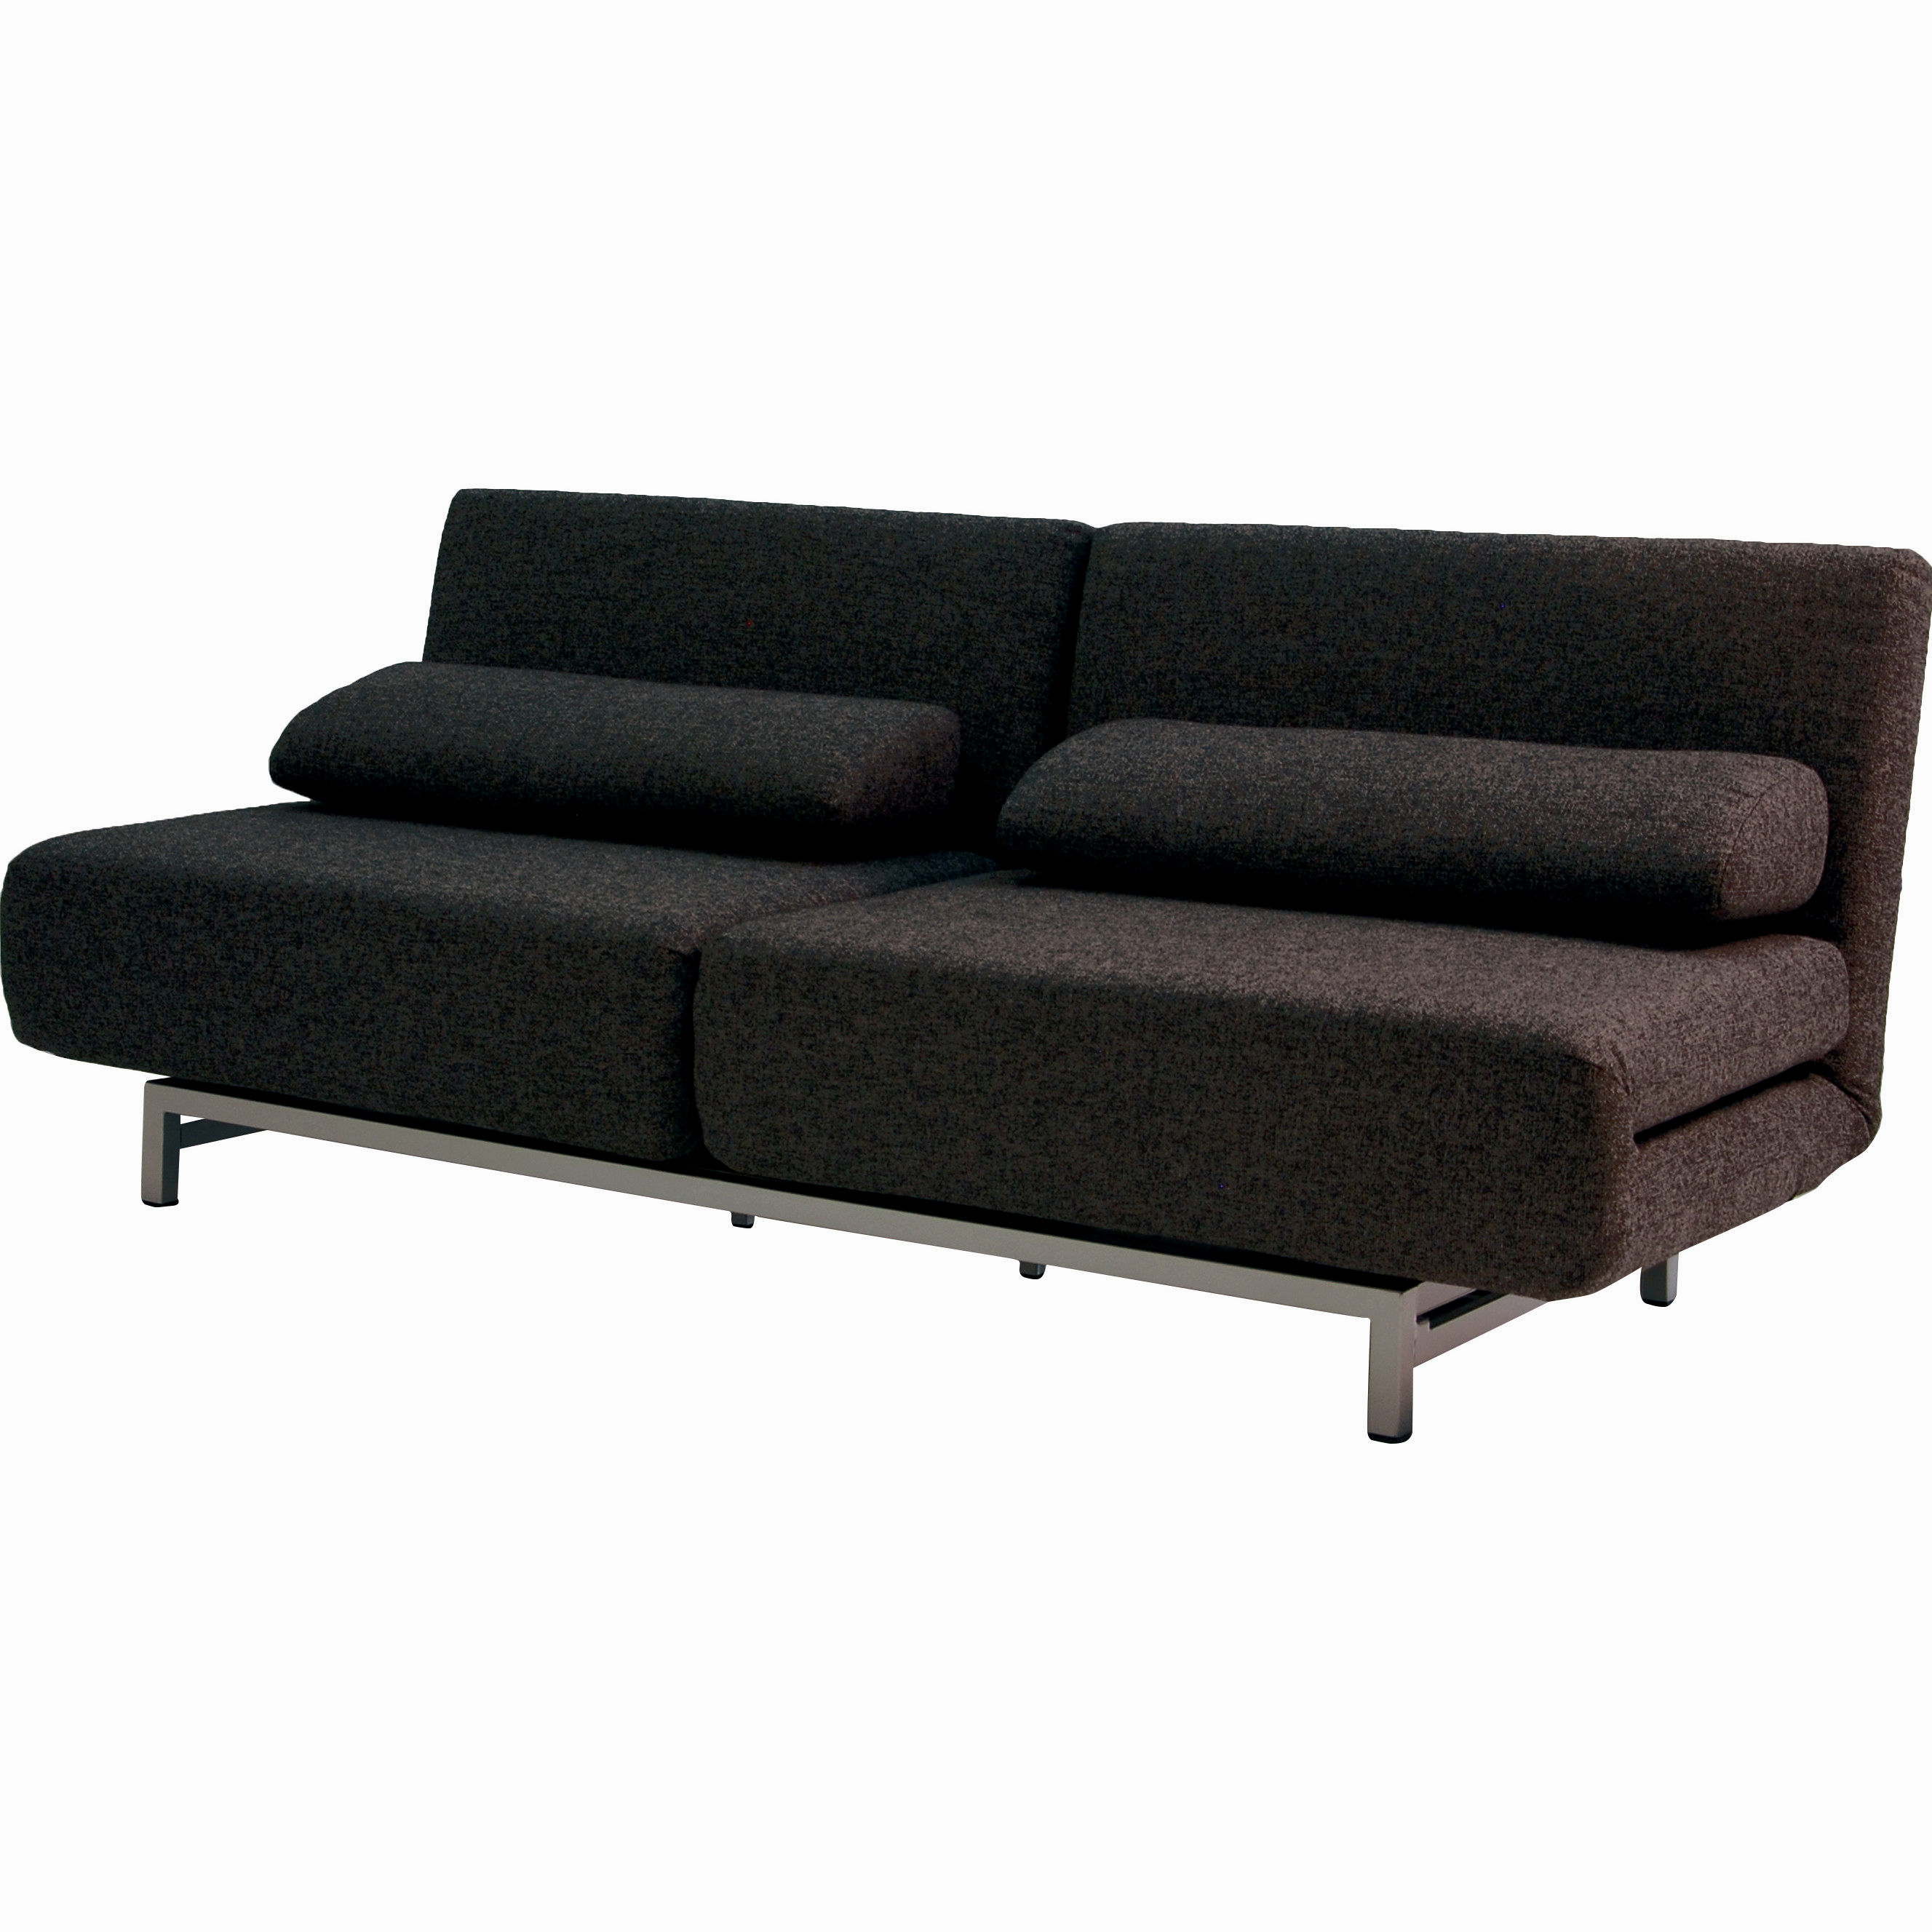 latest deep sectional sofa photograph-Amazing Deep Sectional sofa Photo